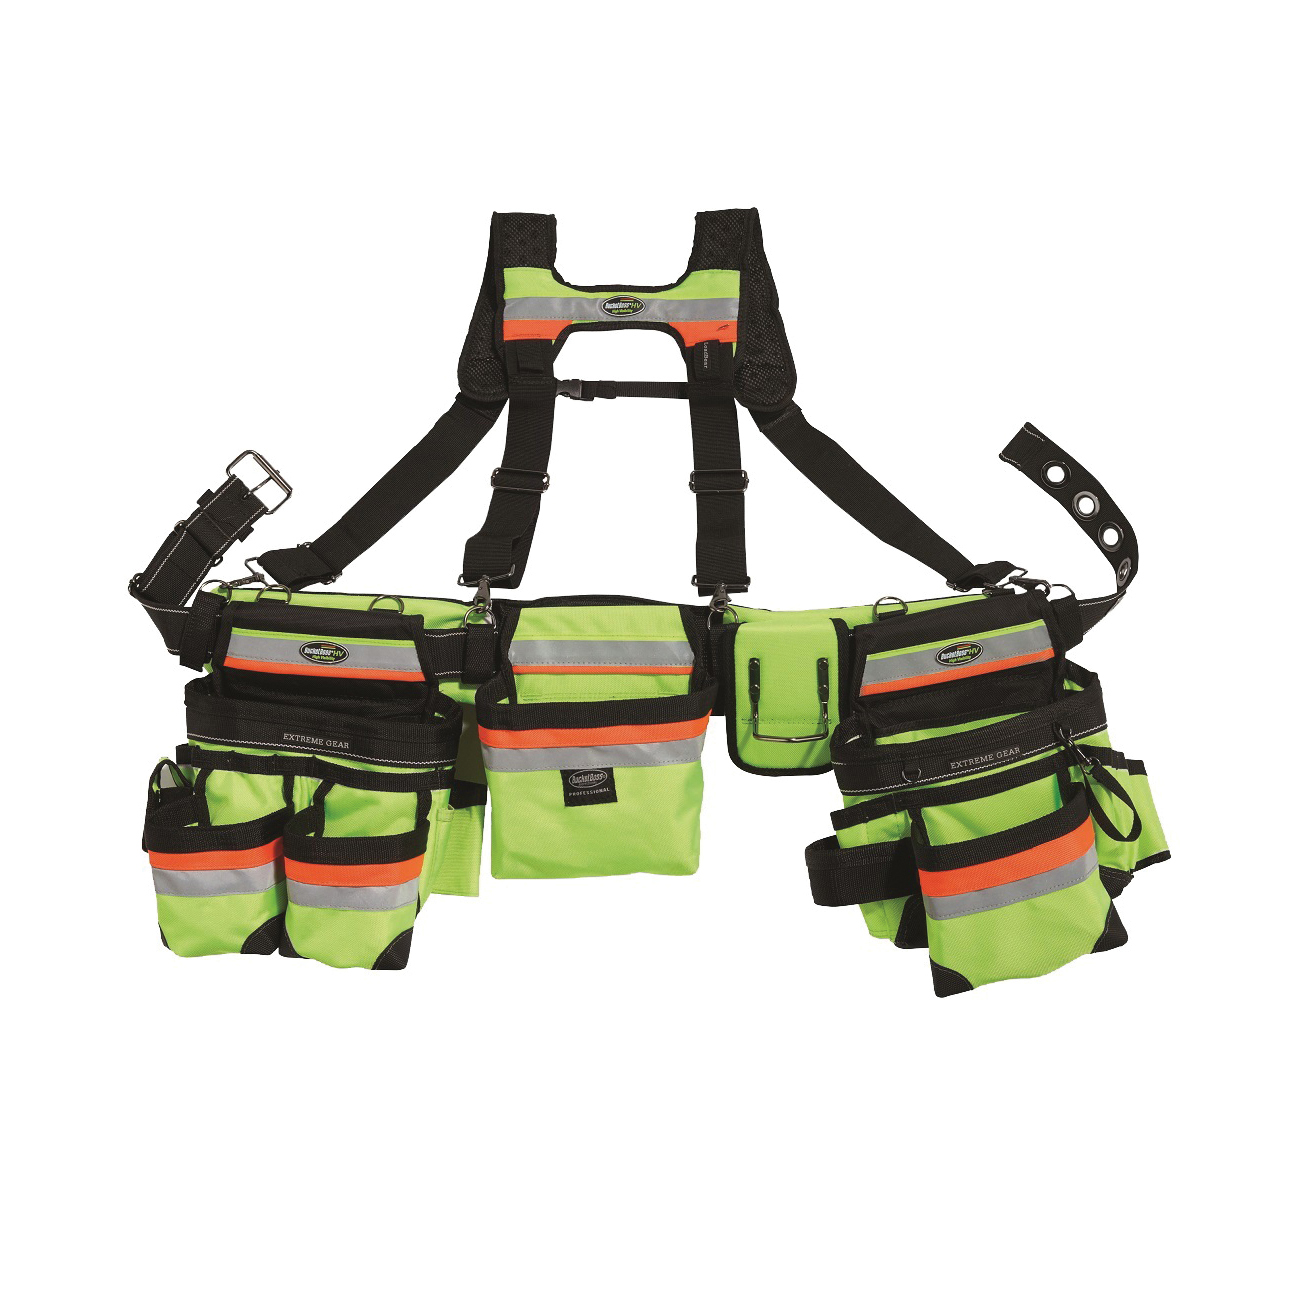 Picture of Bucket Boss 55185-HVOY Framer's Rig, 52 in Waist, Poly Fabric, Black/Yellow, 29 -Pocket